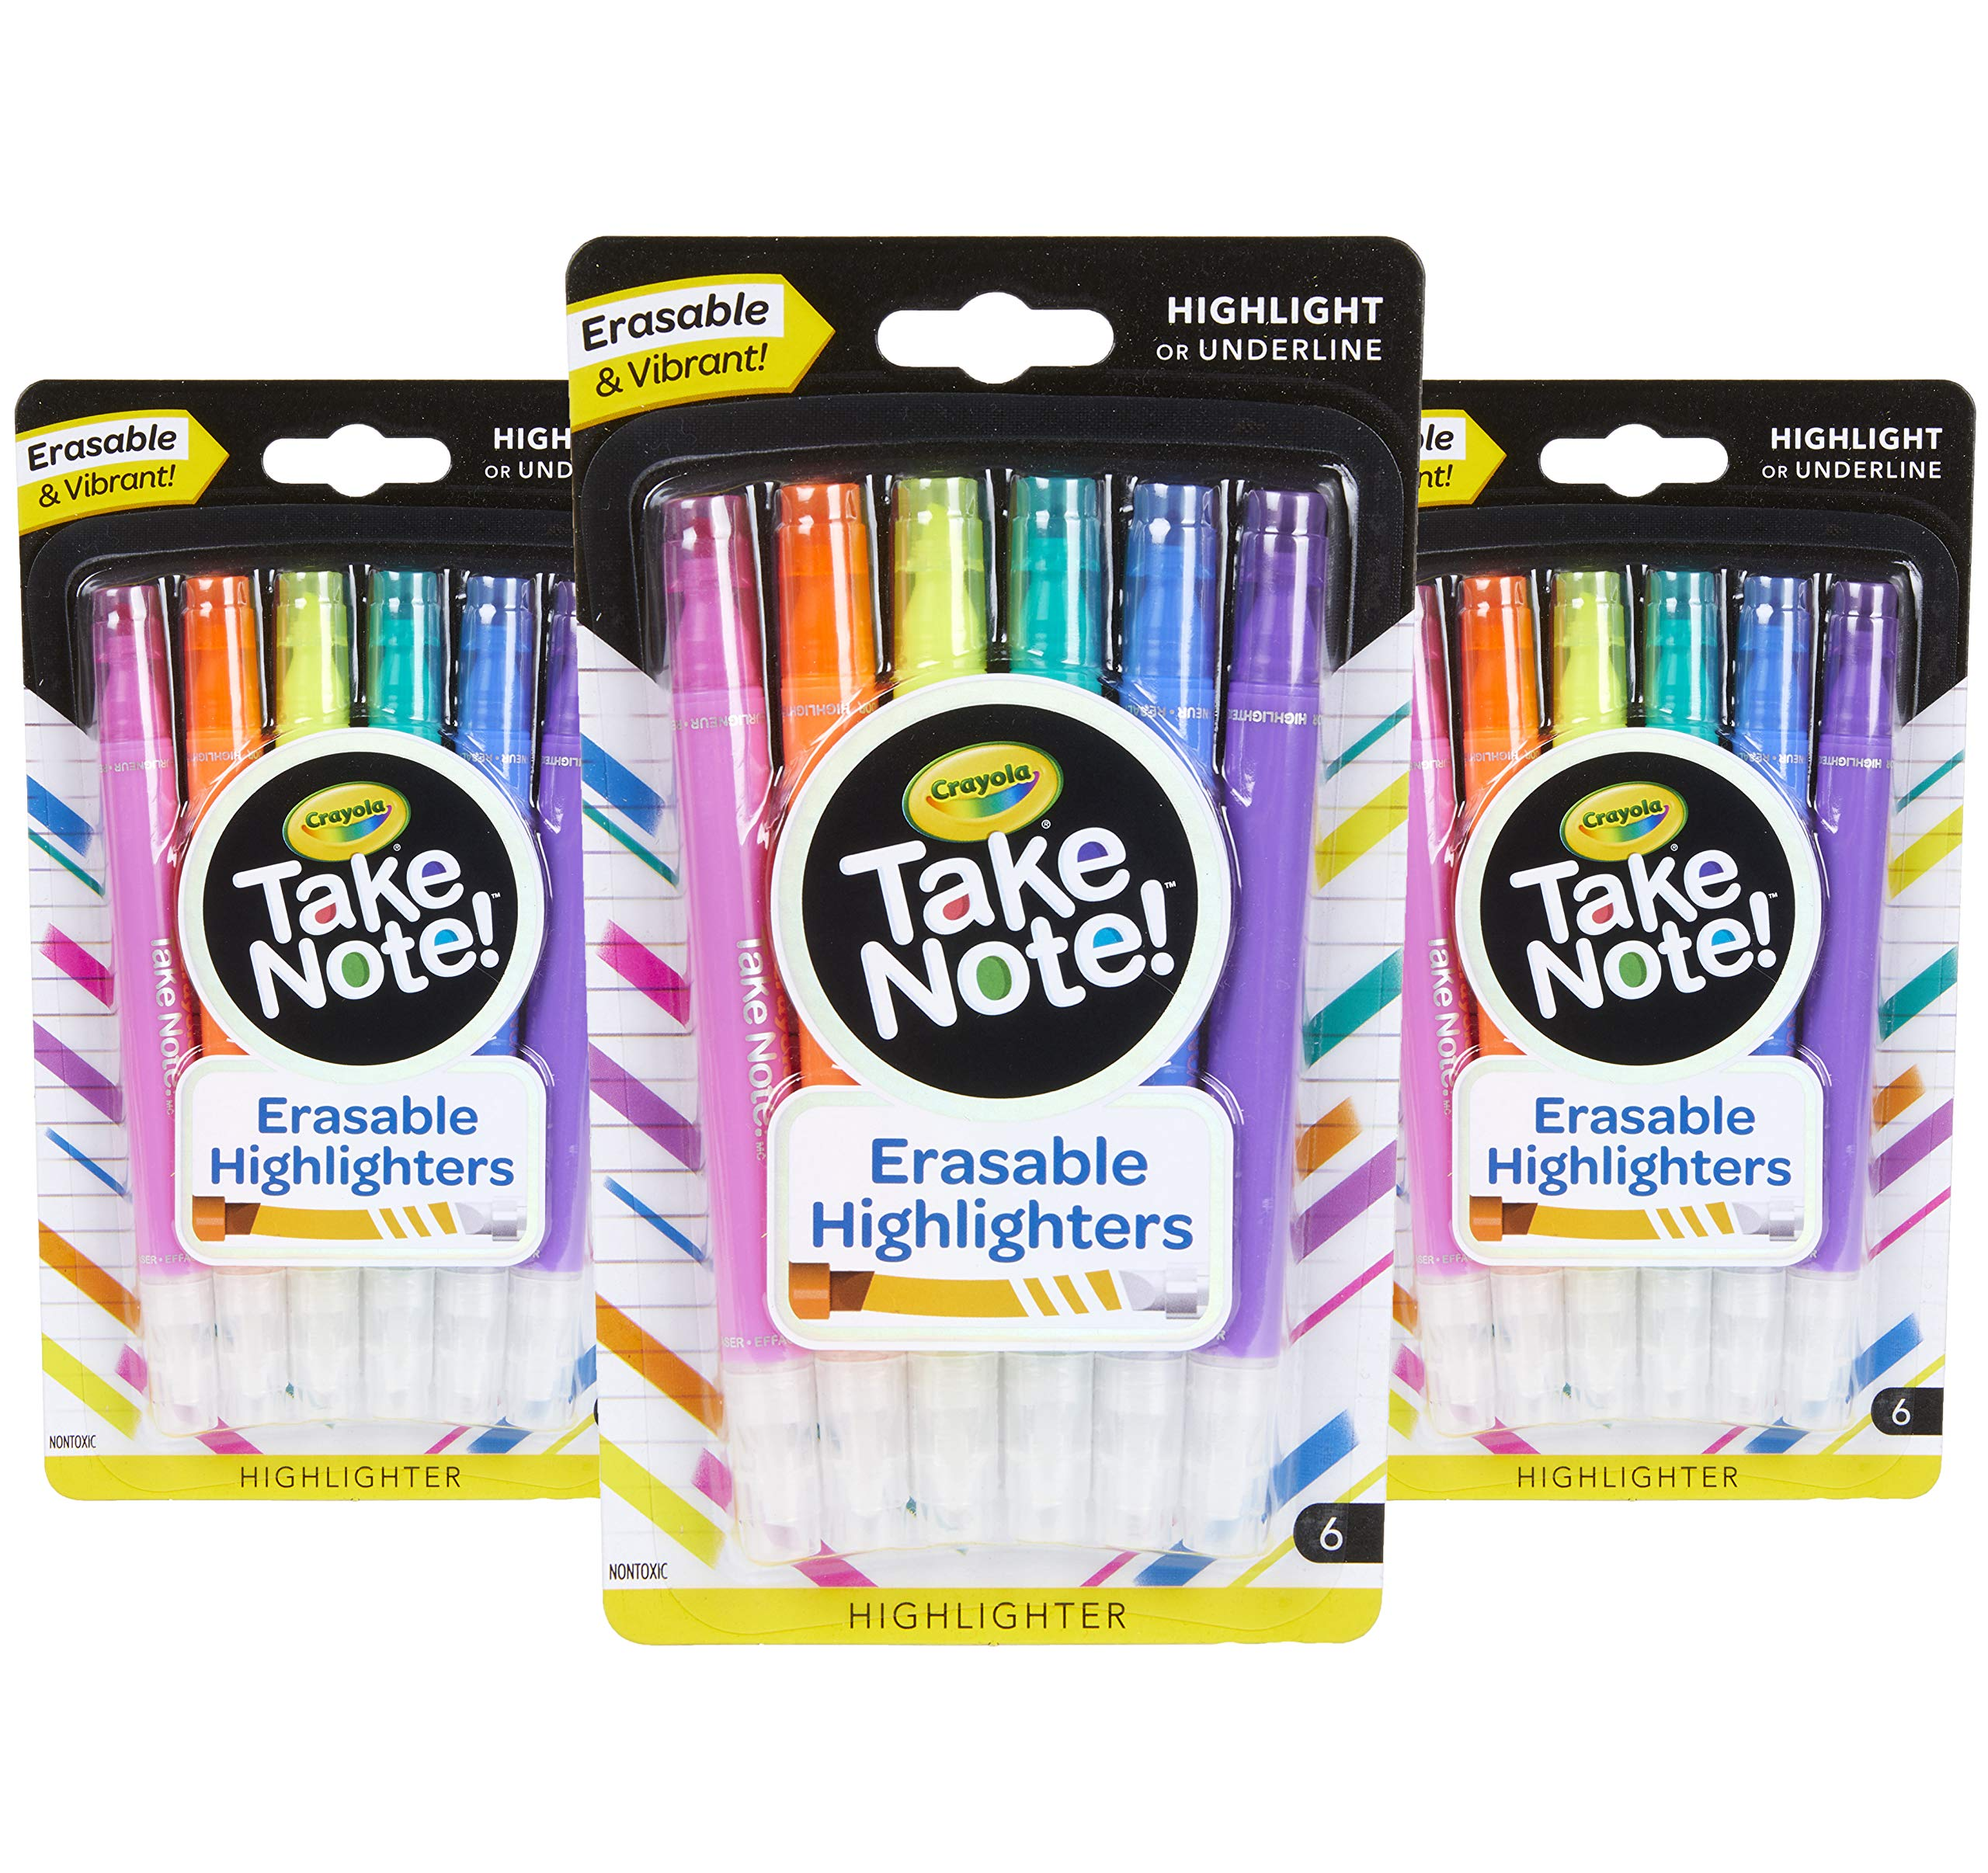 Crayola Take Note Erasable Highlighters, School Supplies, Kids at Home Activities, 18 Count